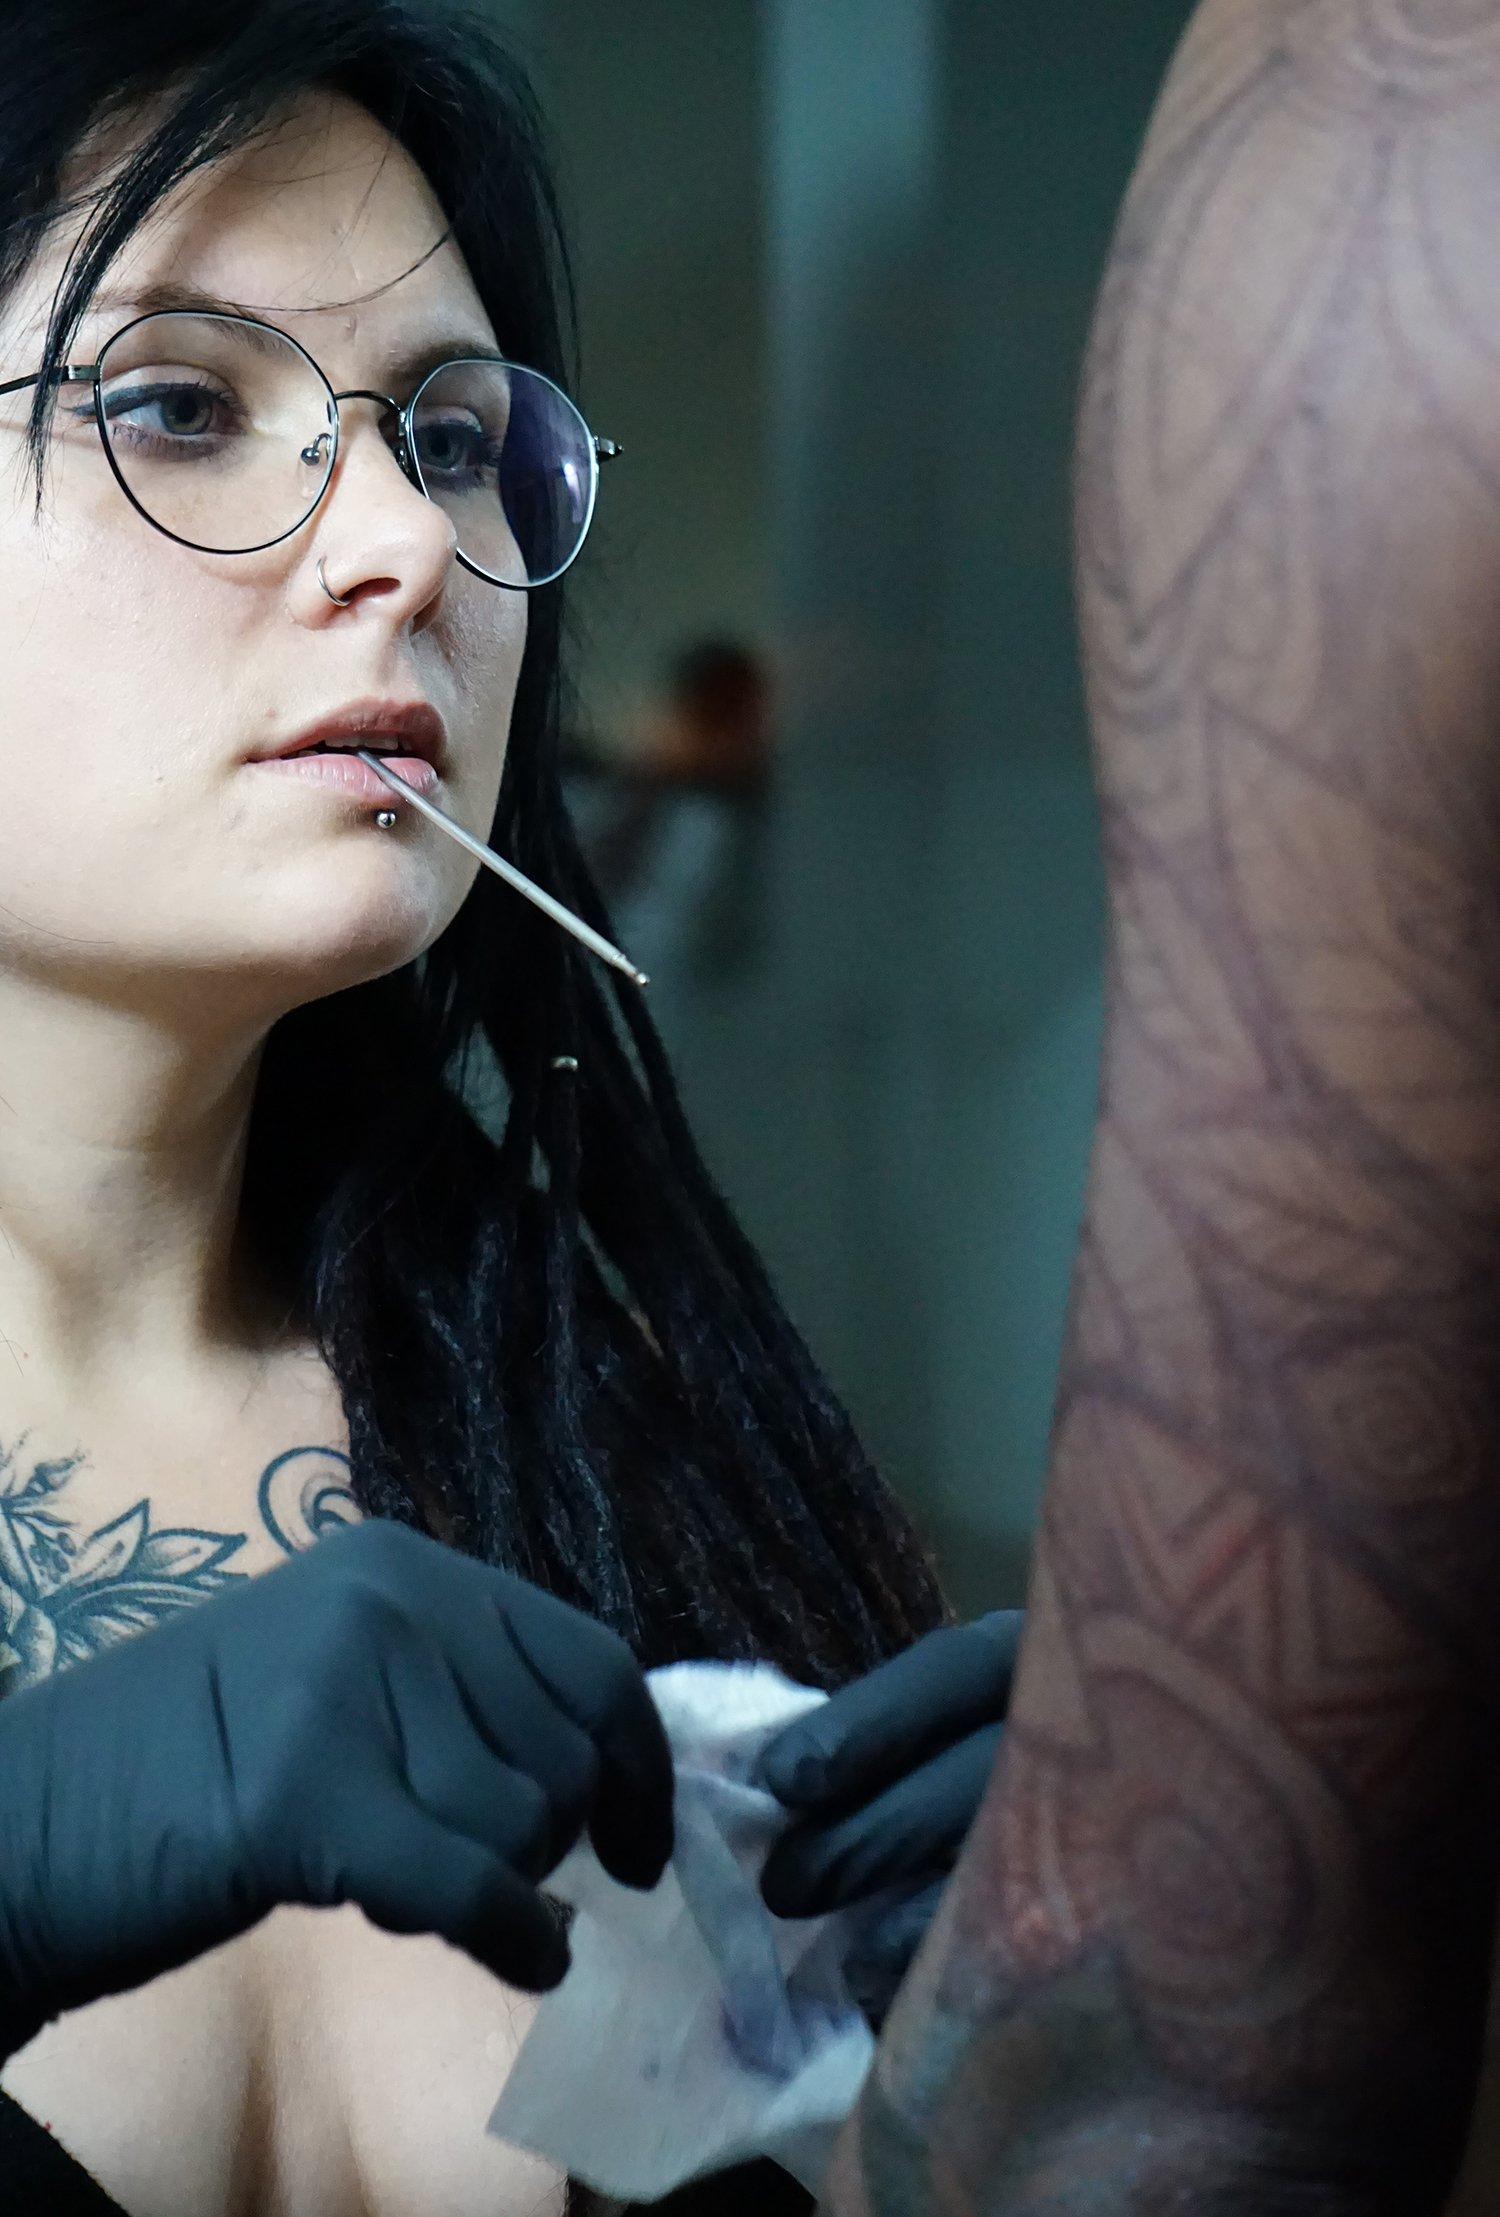 yanina viland freehanding a tattoo on a dark-skinned client